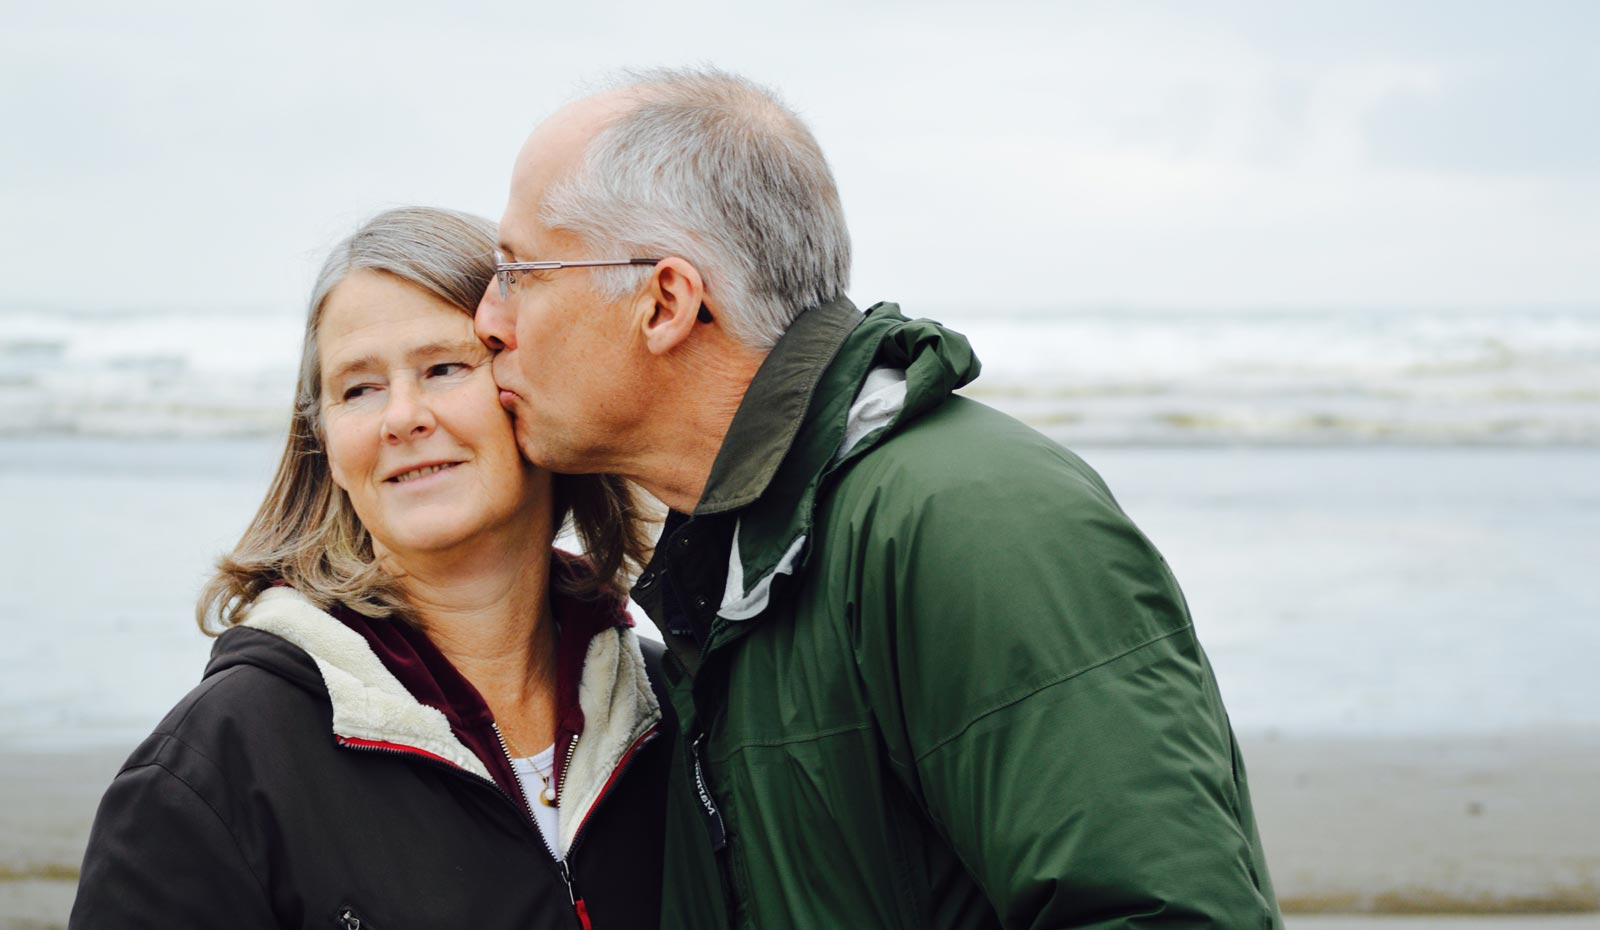 Middle aged couple kissing on beach